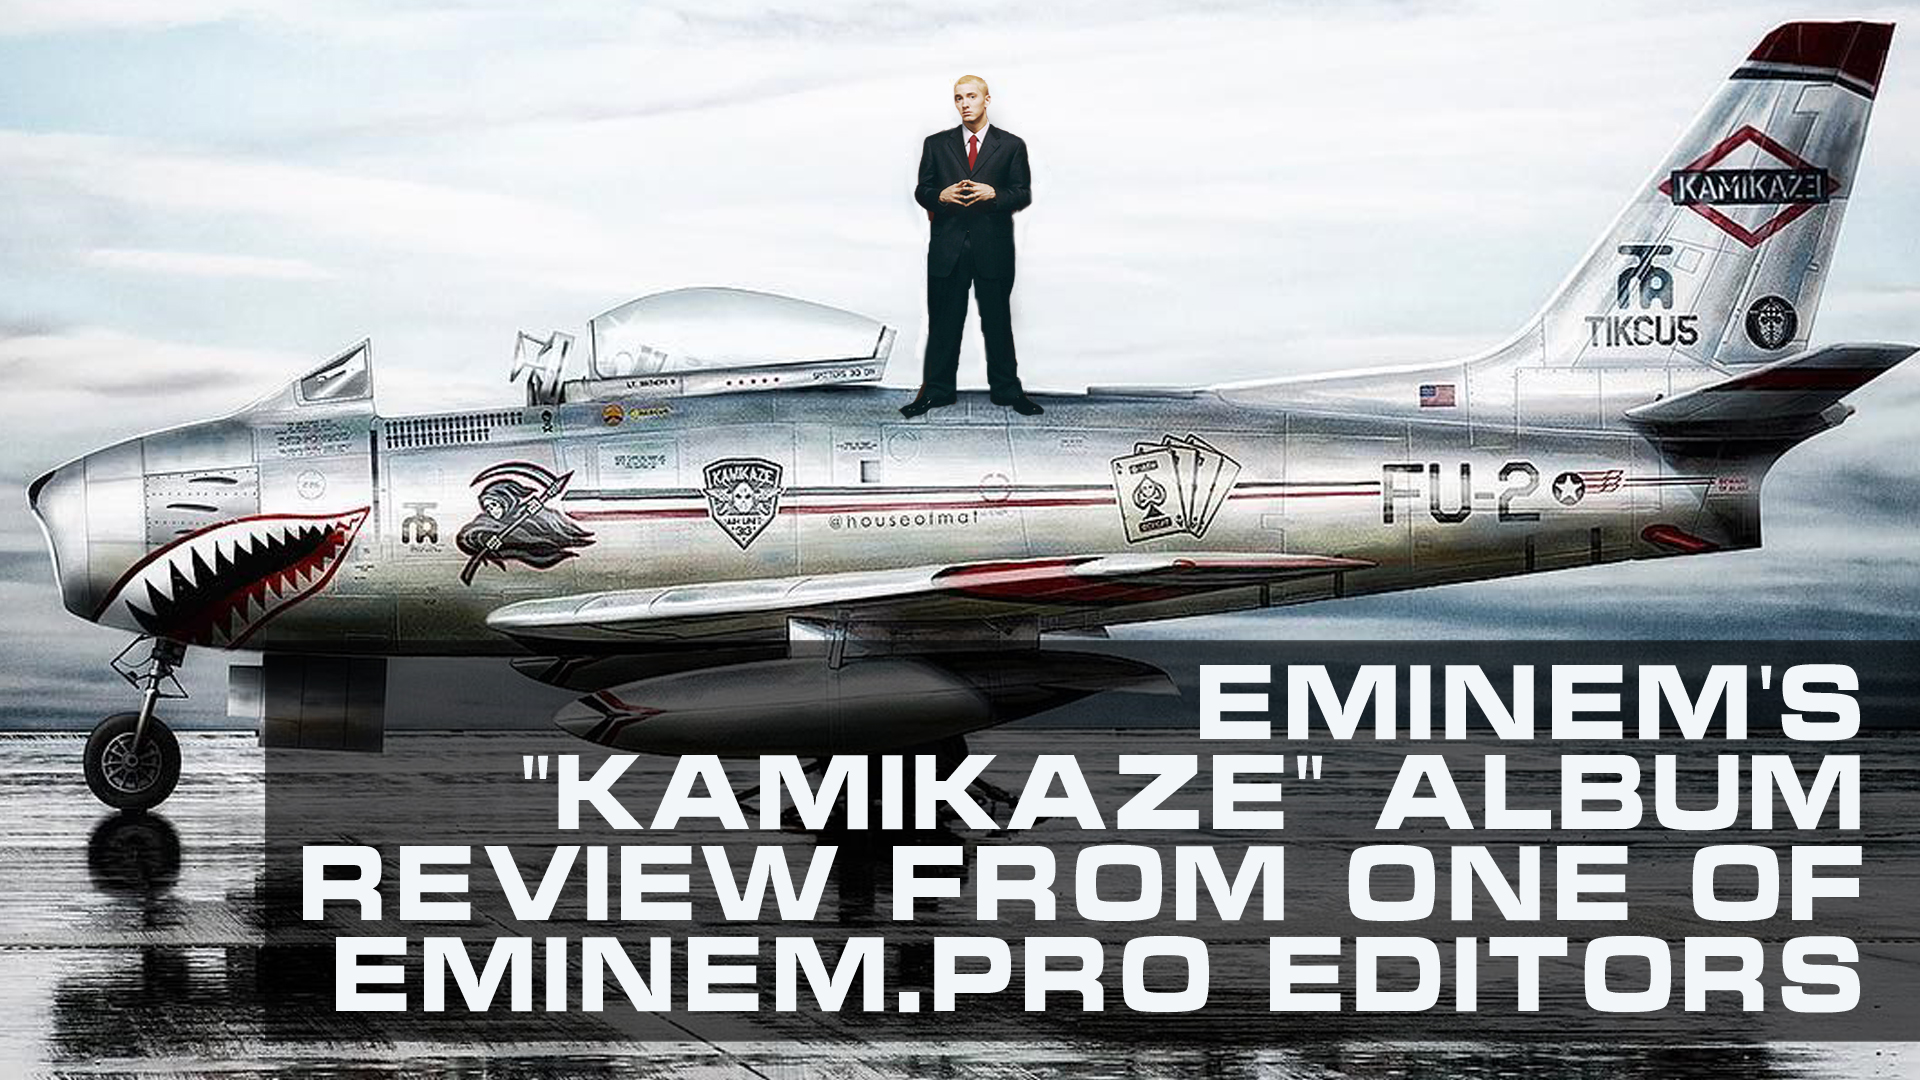 """Kamikaze"" - a desperate step towards normality. Eminem's new album review from one of Eminem.Pro editors"